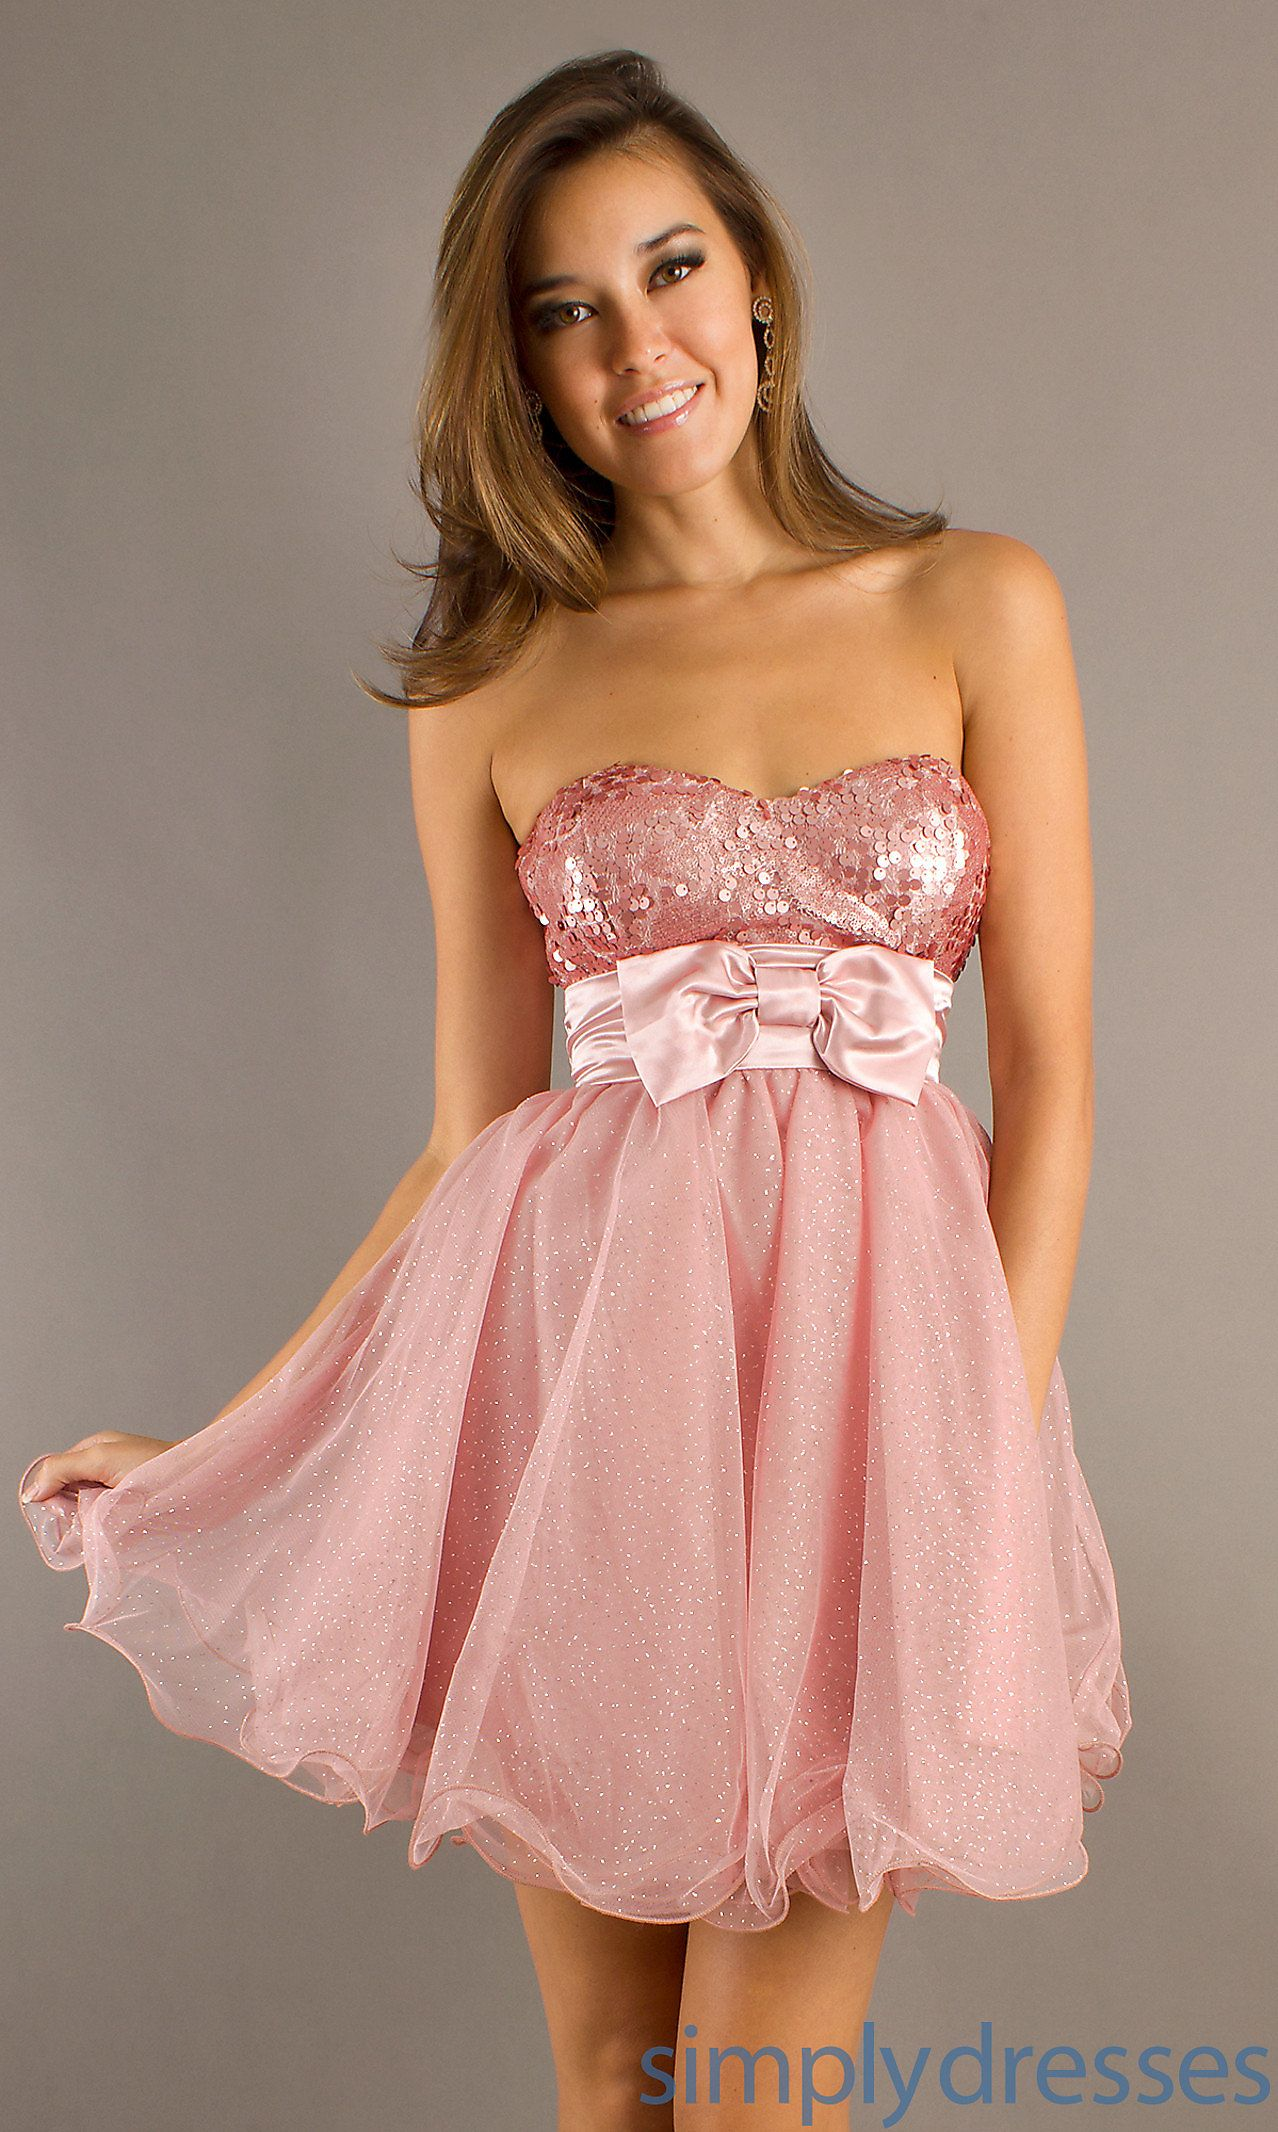 Pink Party Dresses, Strapless Short Prom Dresses - Simply Dresses ...